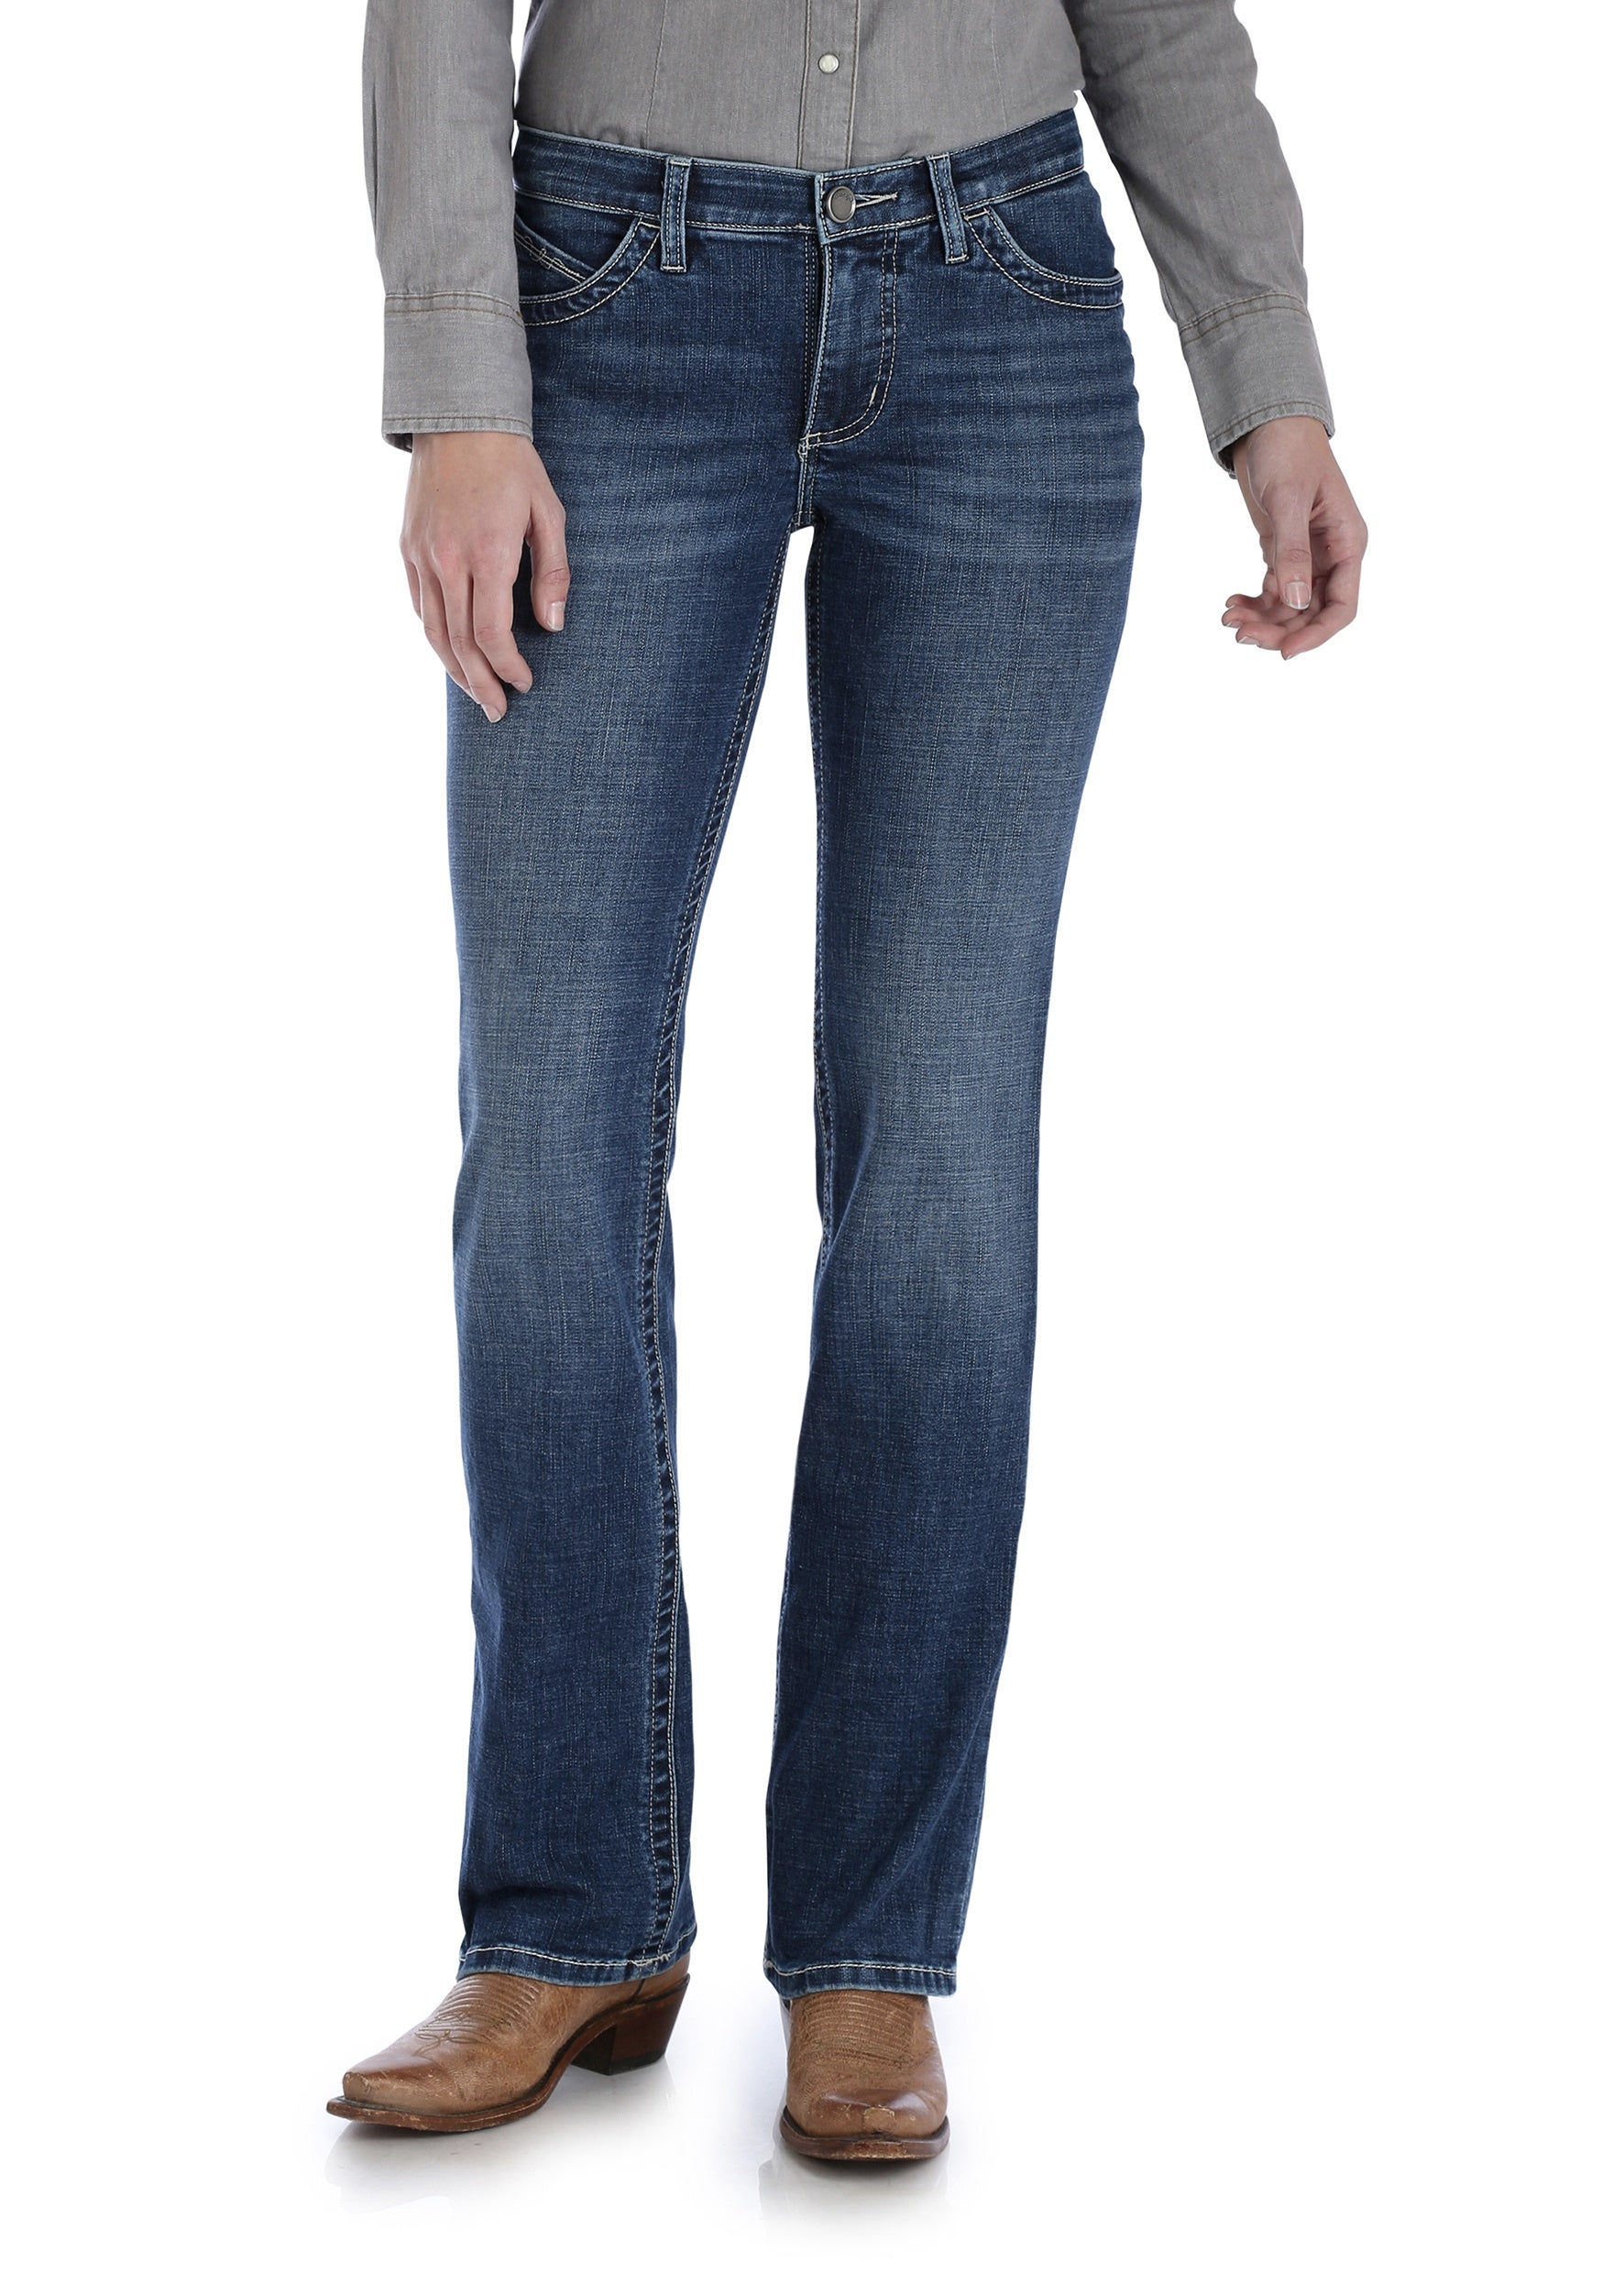 Womens Ultimate Riding Jean- Willow - 34 Leg